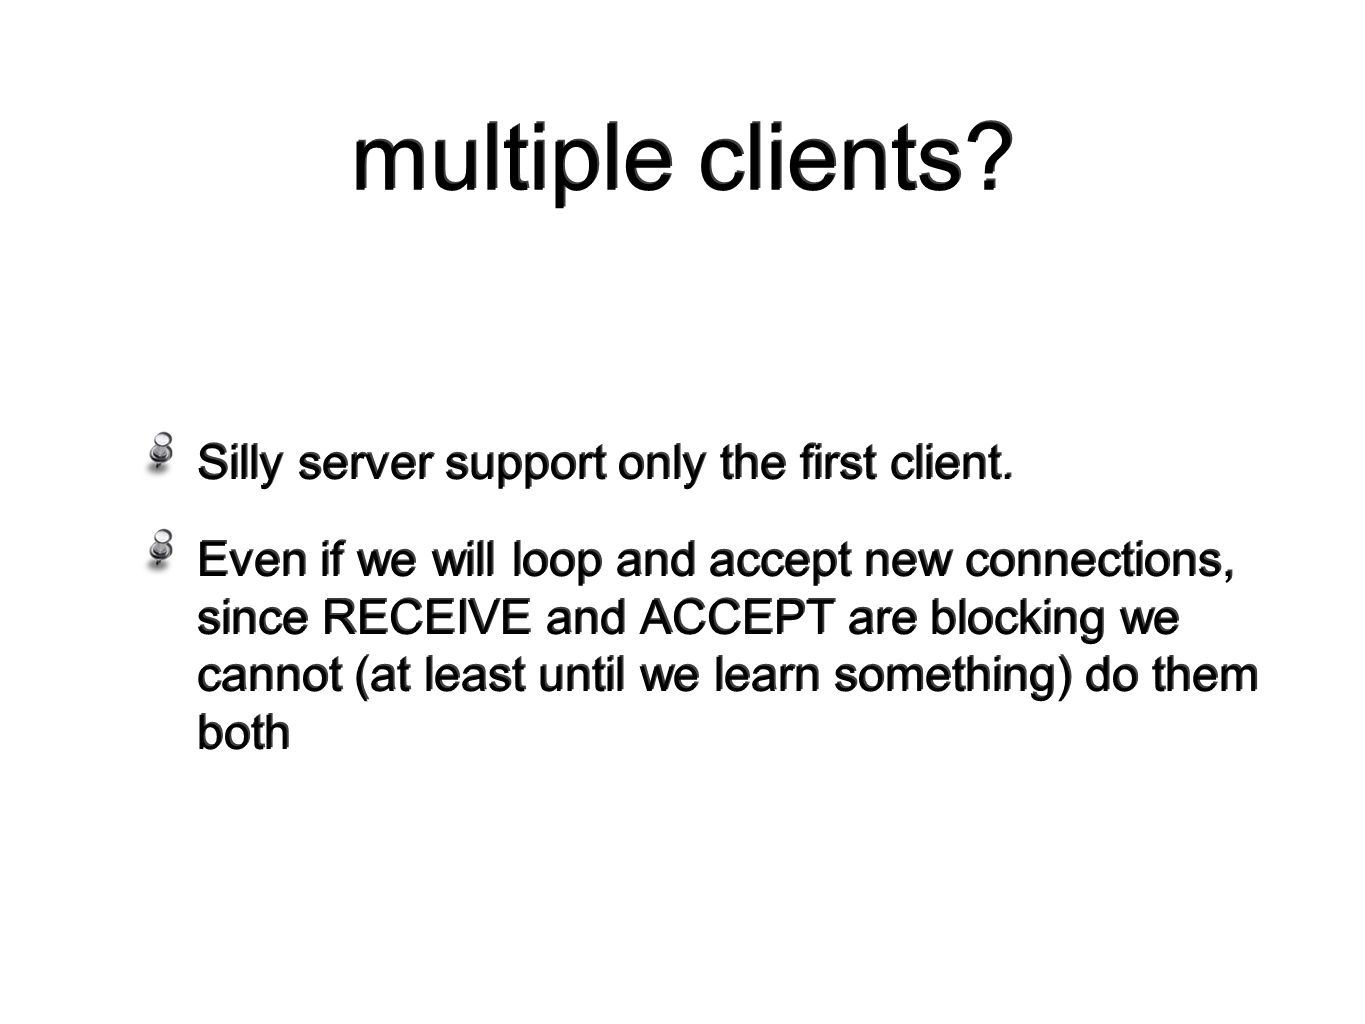 multiple clients. Silly server support only the first client.